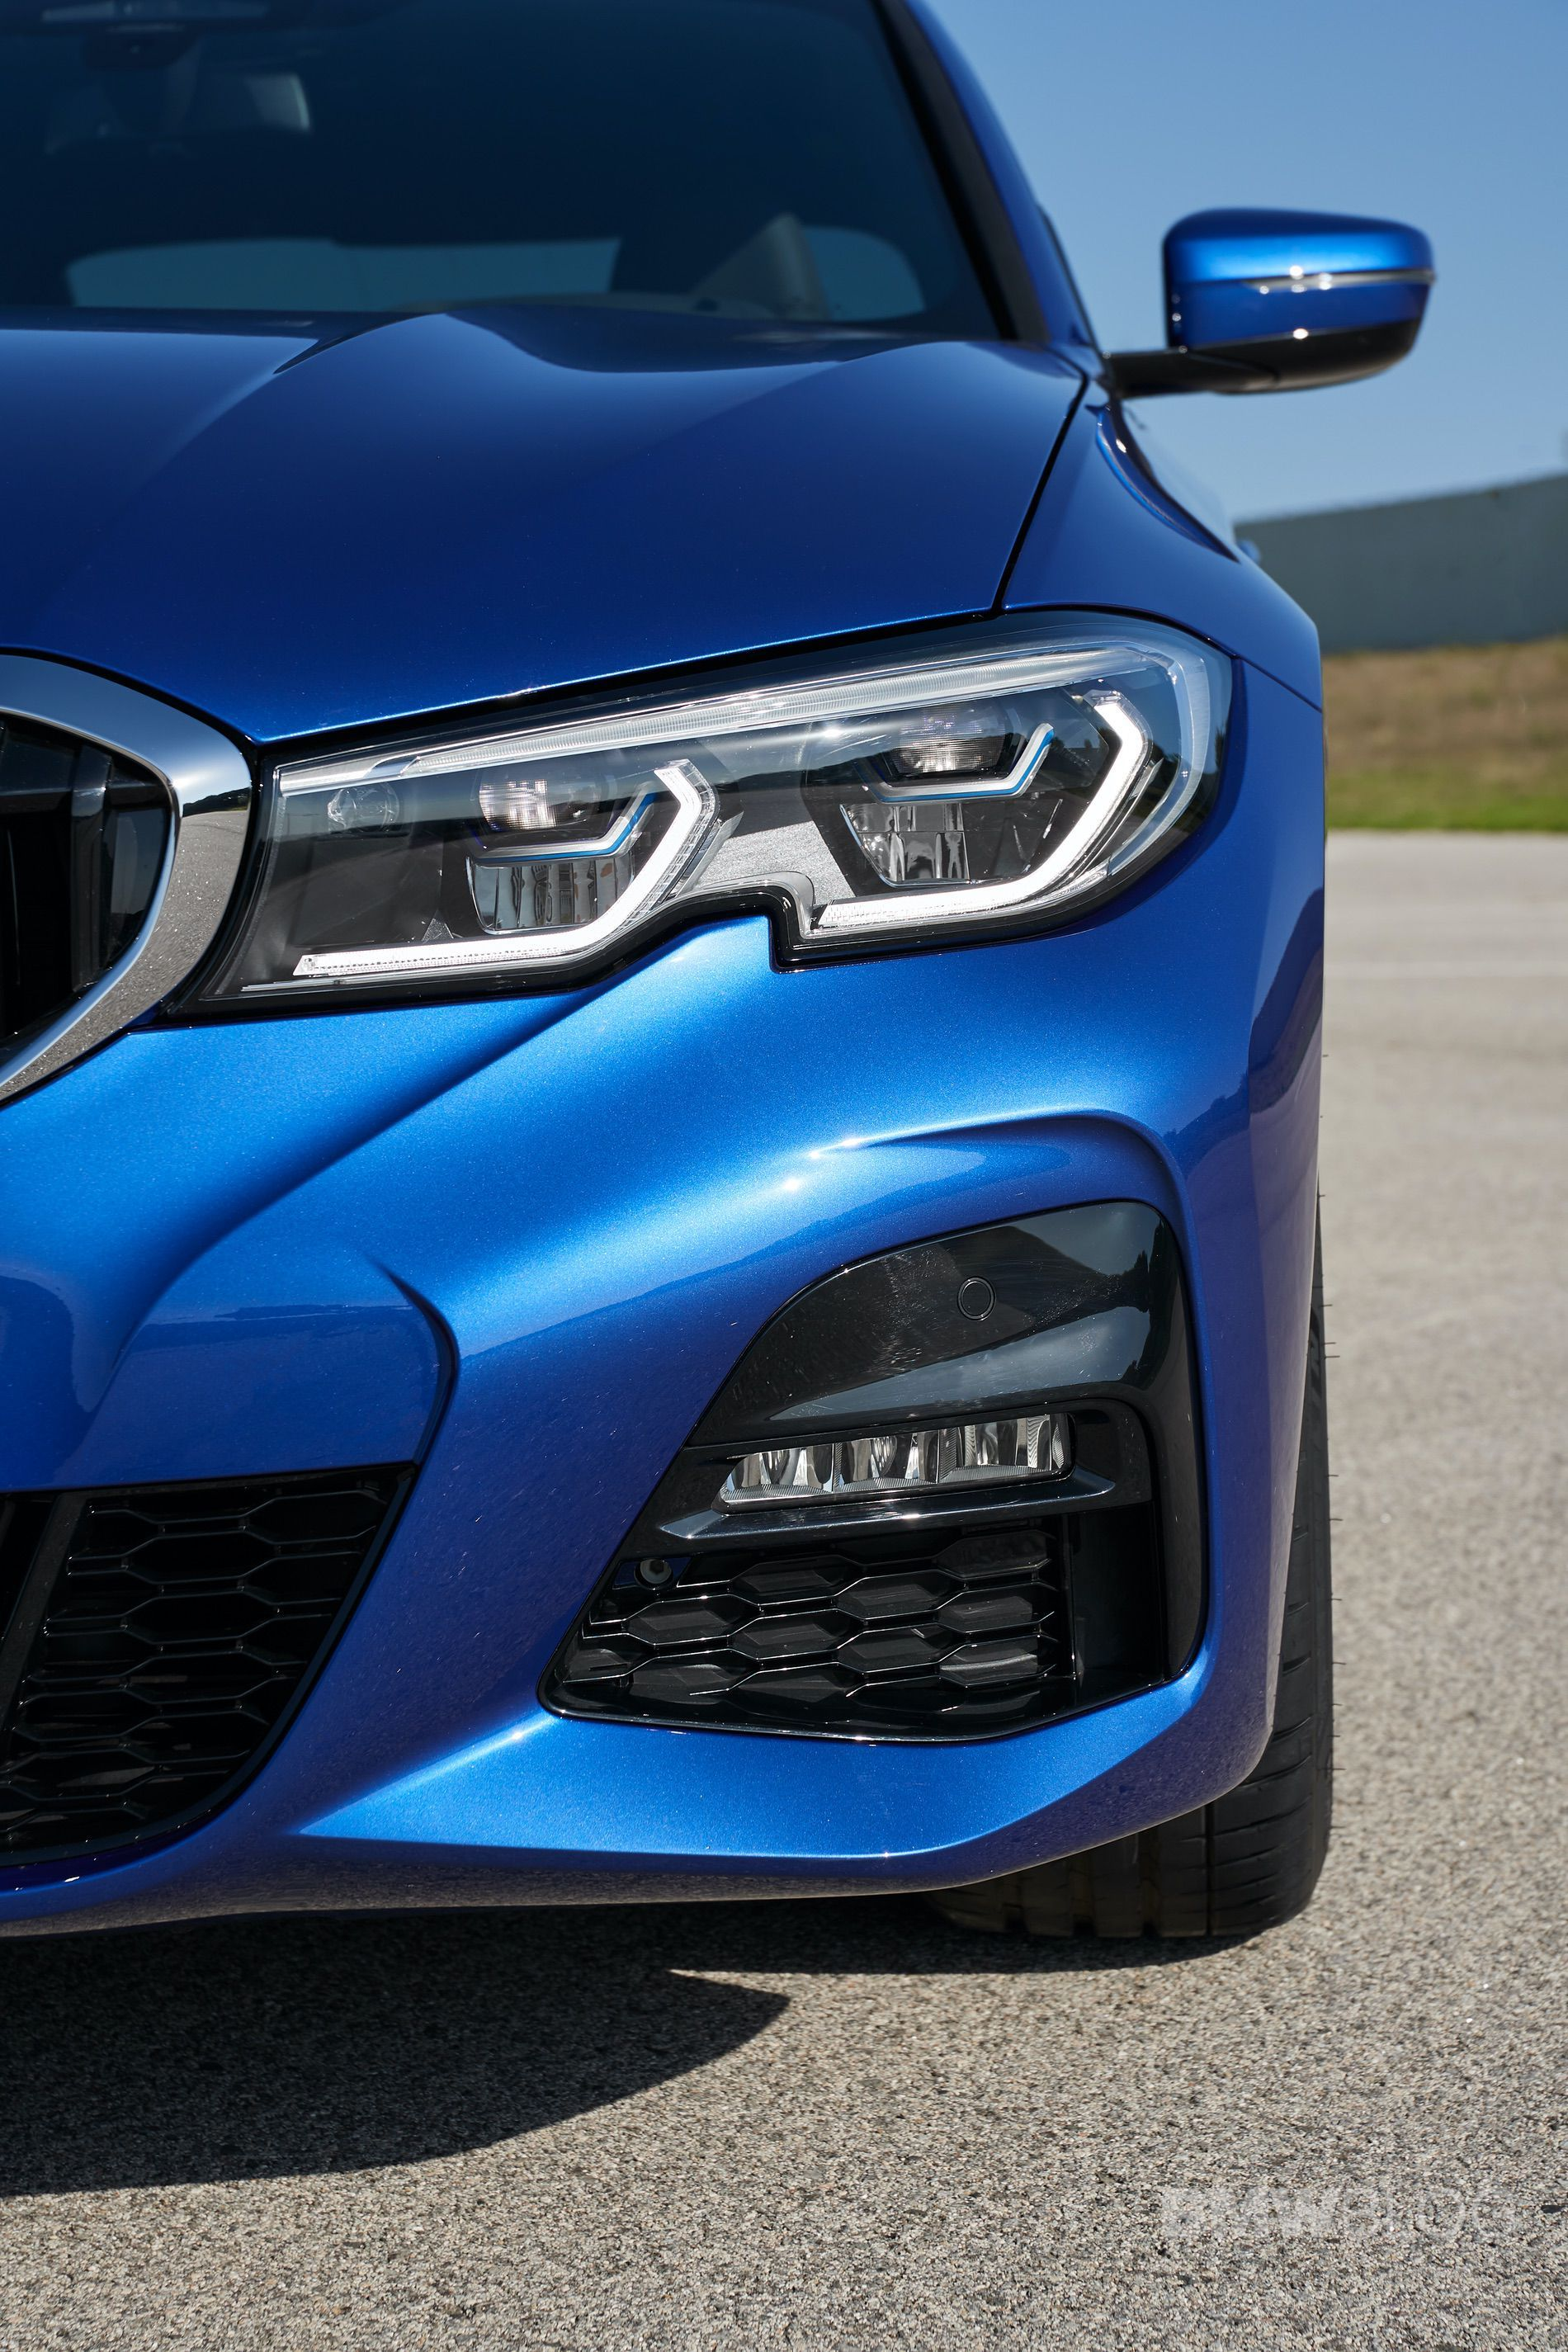 G20 Bmw 3 Series Headlights Are Throwback To E46 Bmw Bmw 3